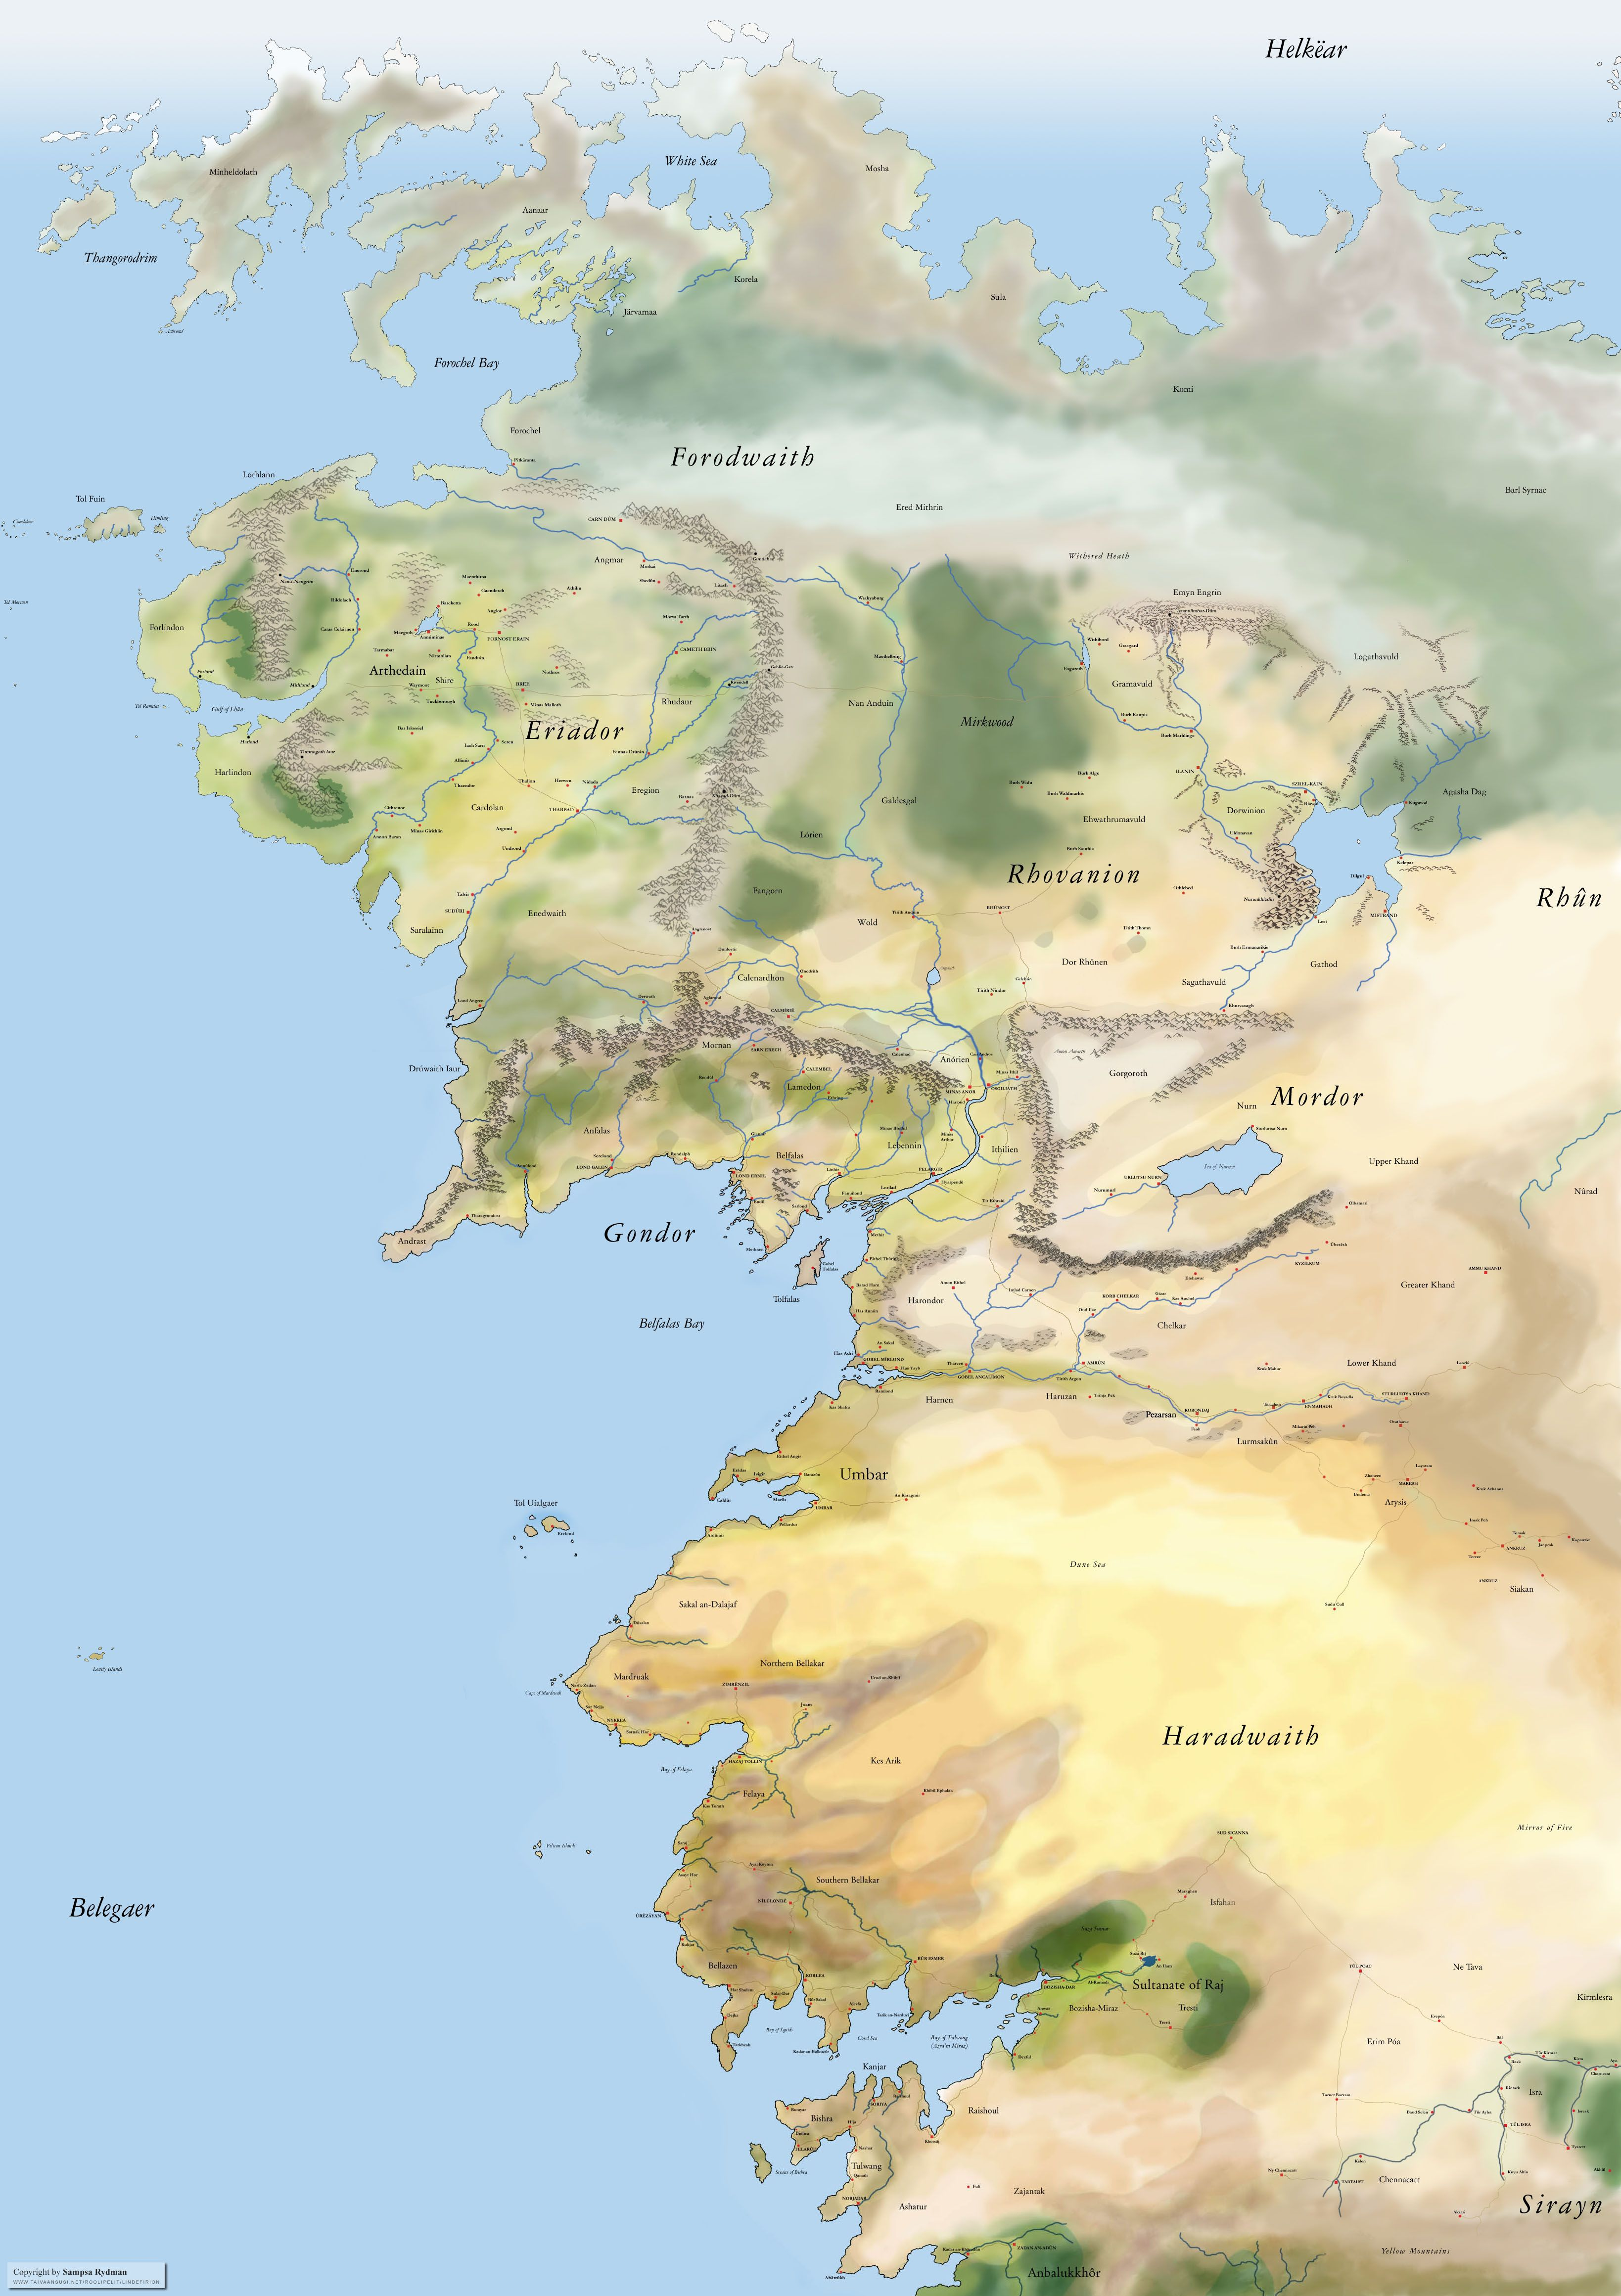 Non canonical expanded map of North Western Middle Earth partially